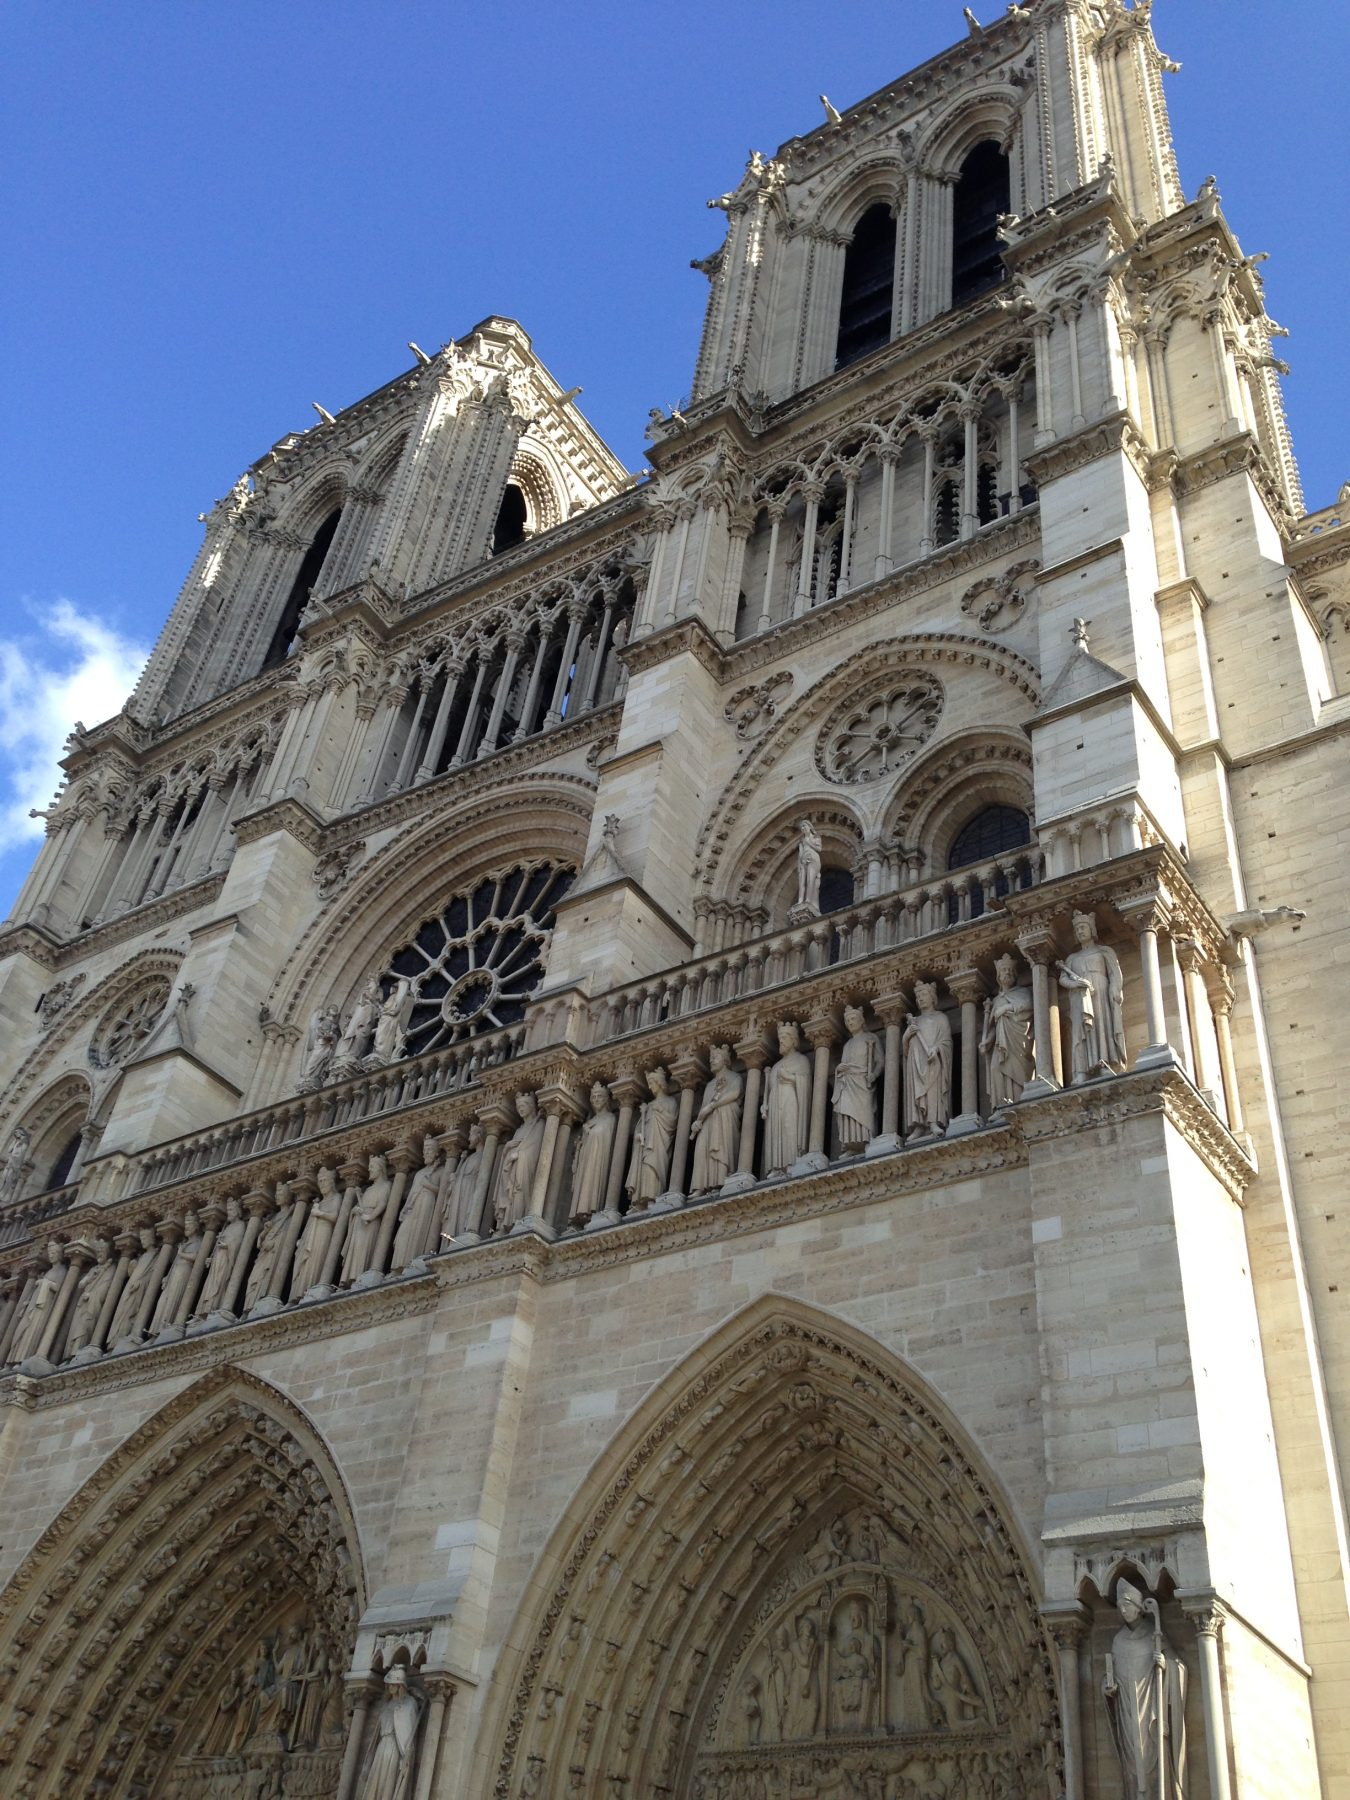 Notre Dame Pairs, France